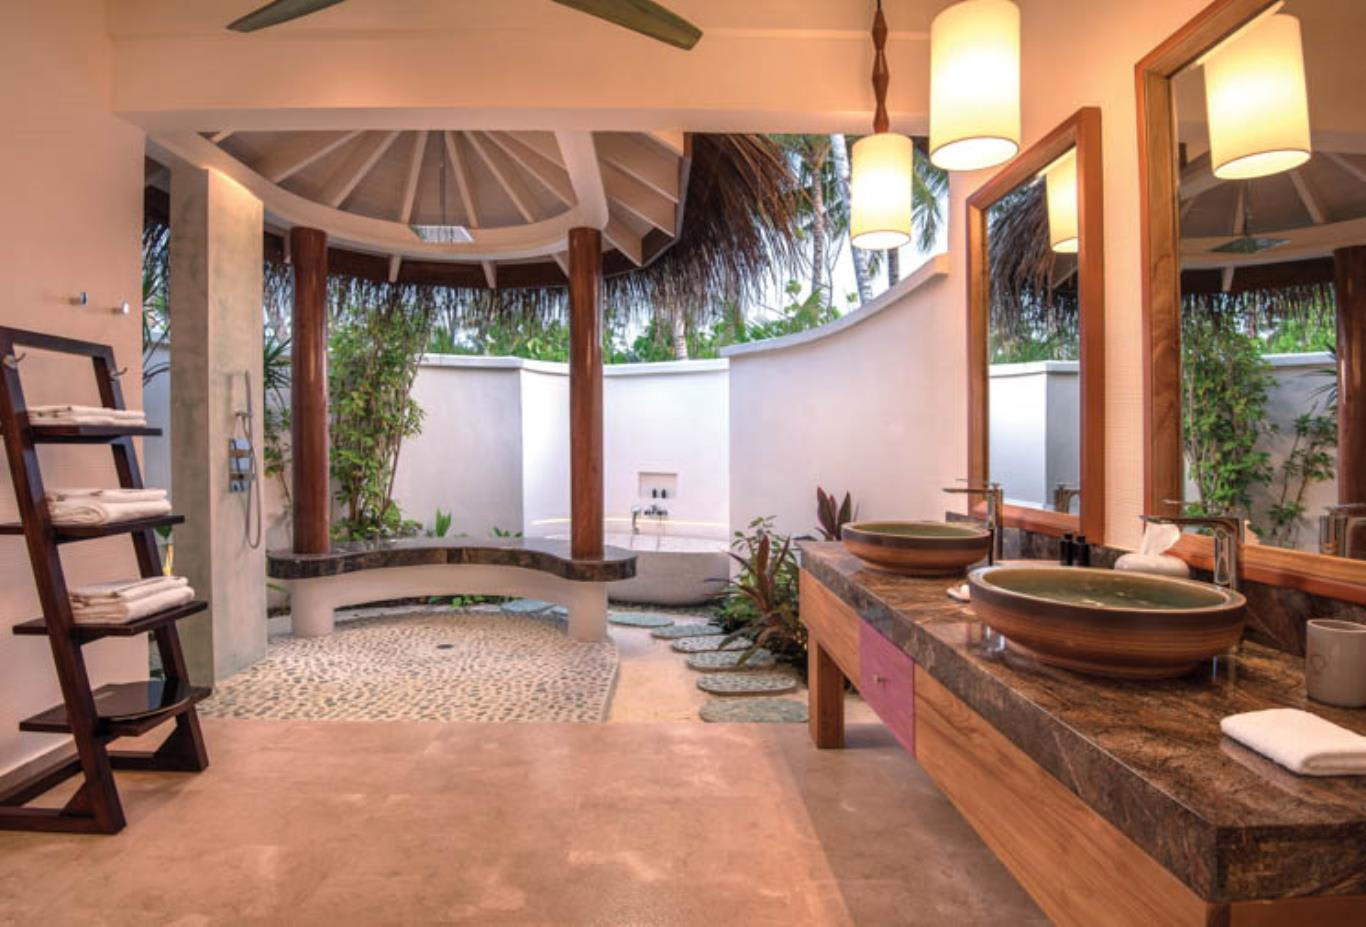 Beach Family Suites with Pool main bathroom interior